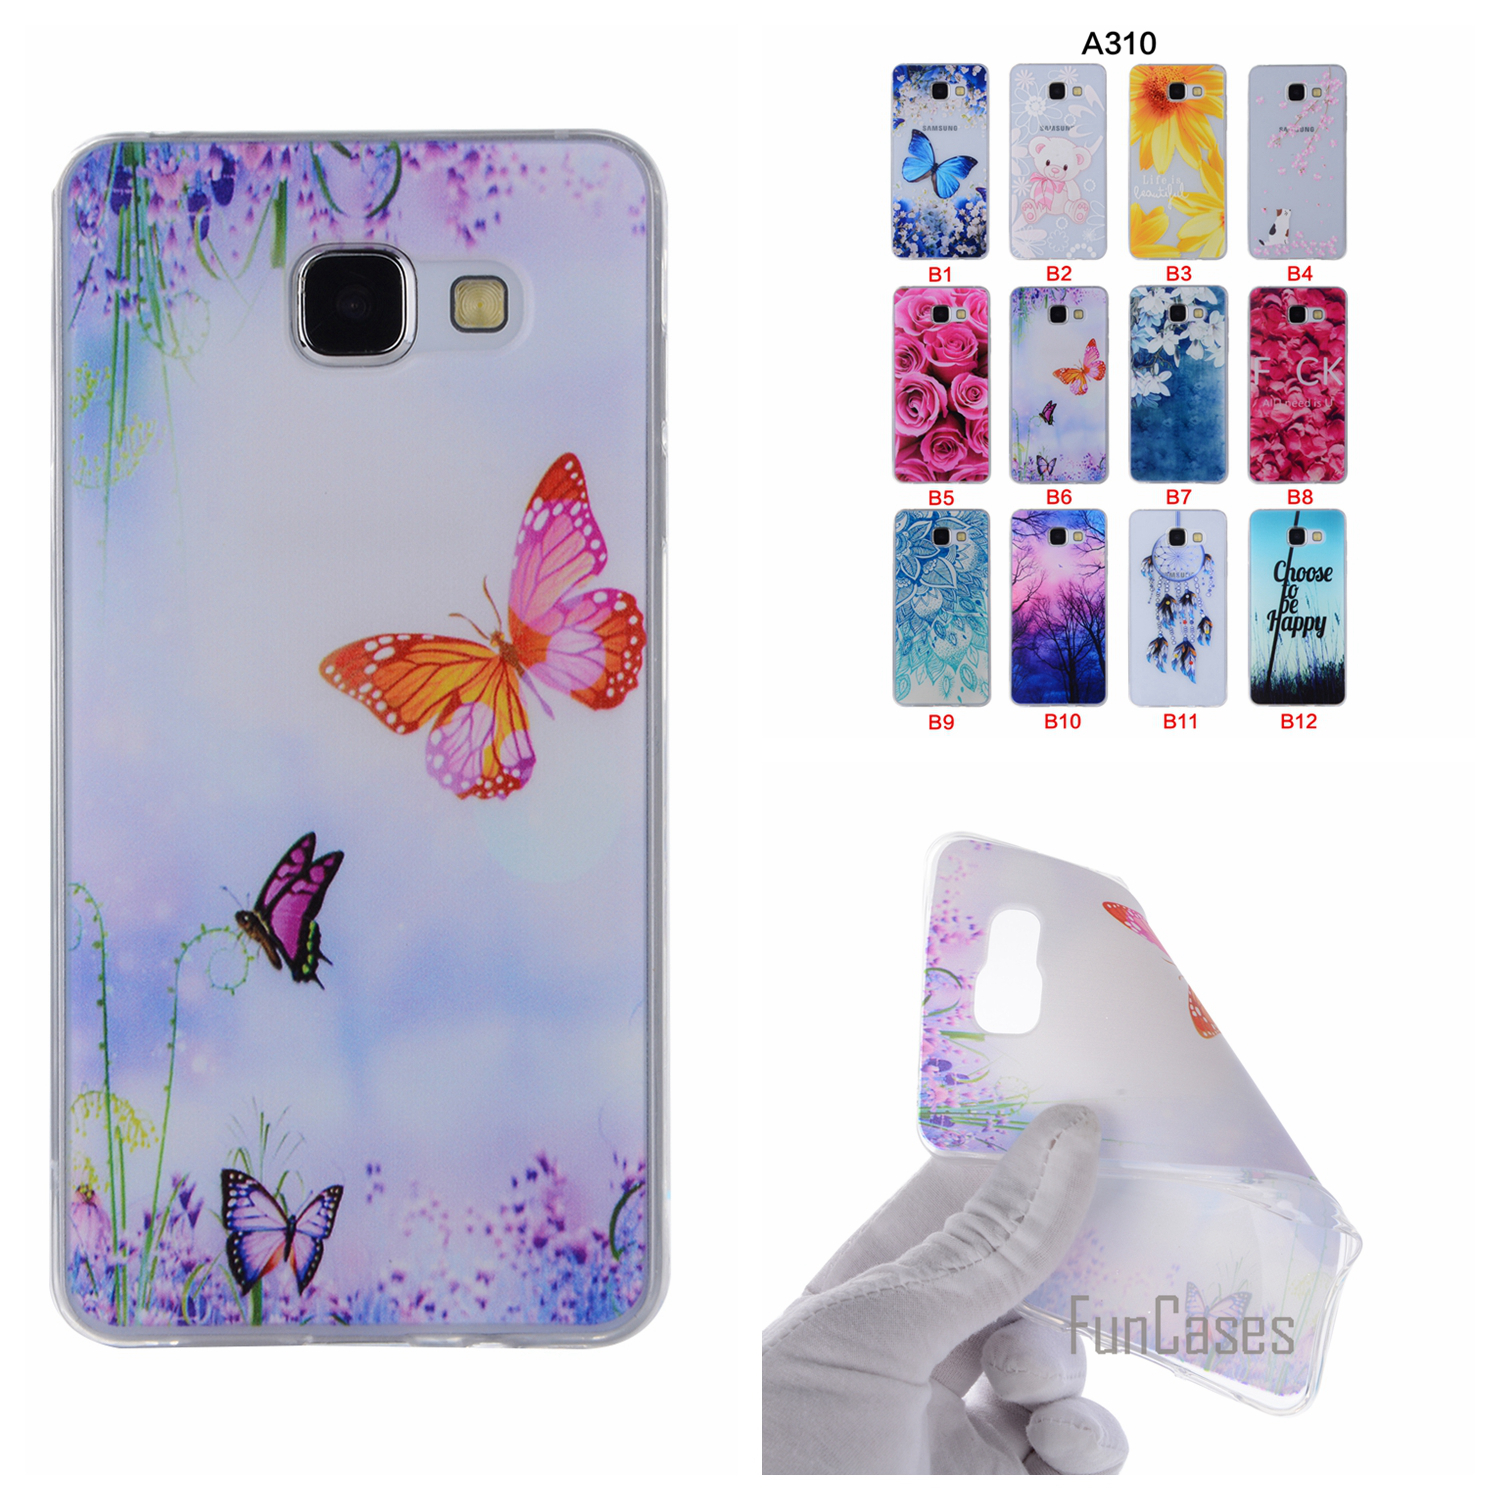 Cartoon Flower Tree Painted Back Cover Silicon Gel Soft TPU Mobile Phone Case For Samsung Galaxy A310 coque A3 2016 A310 capinha